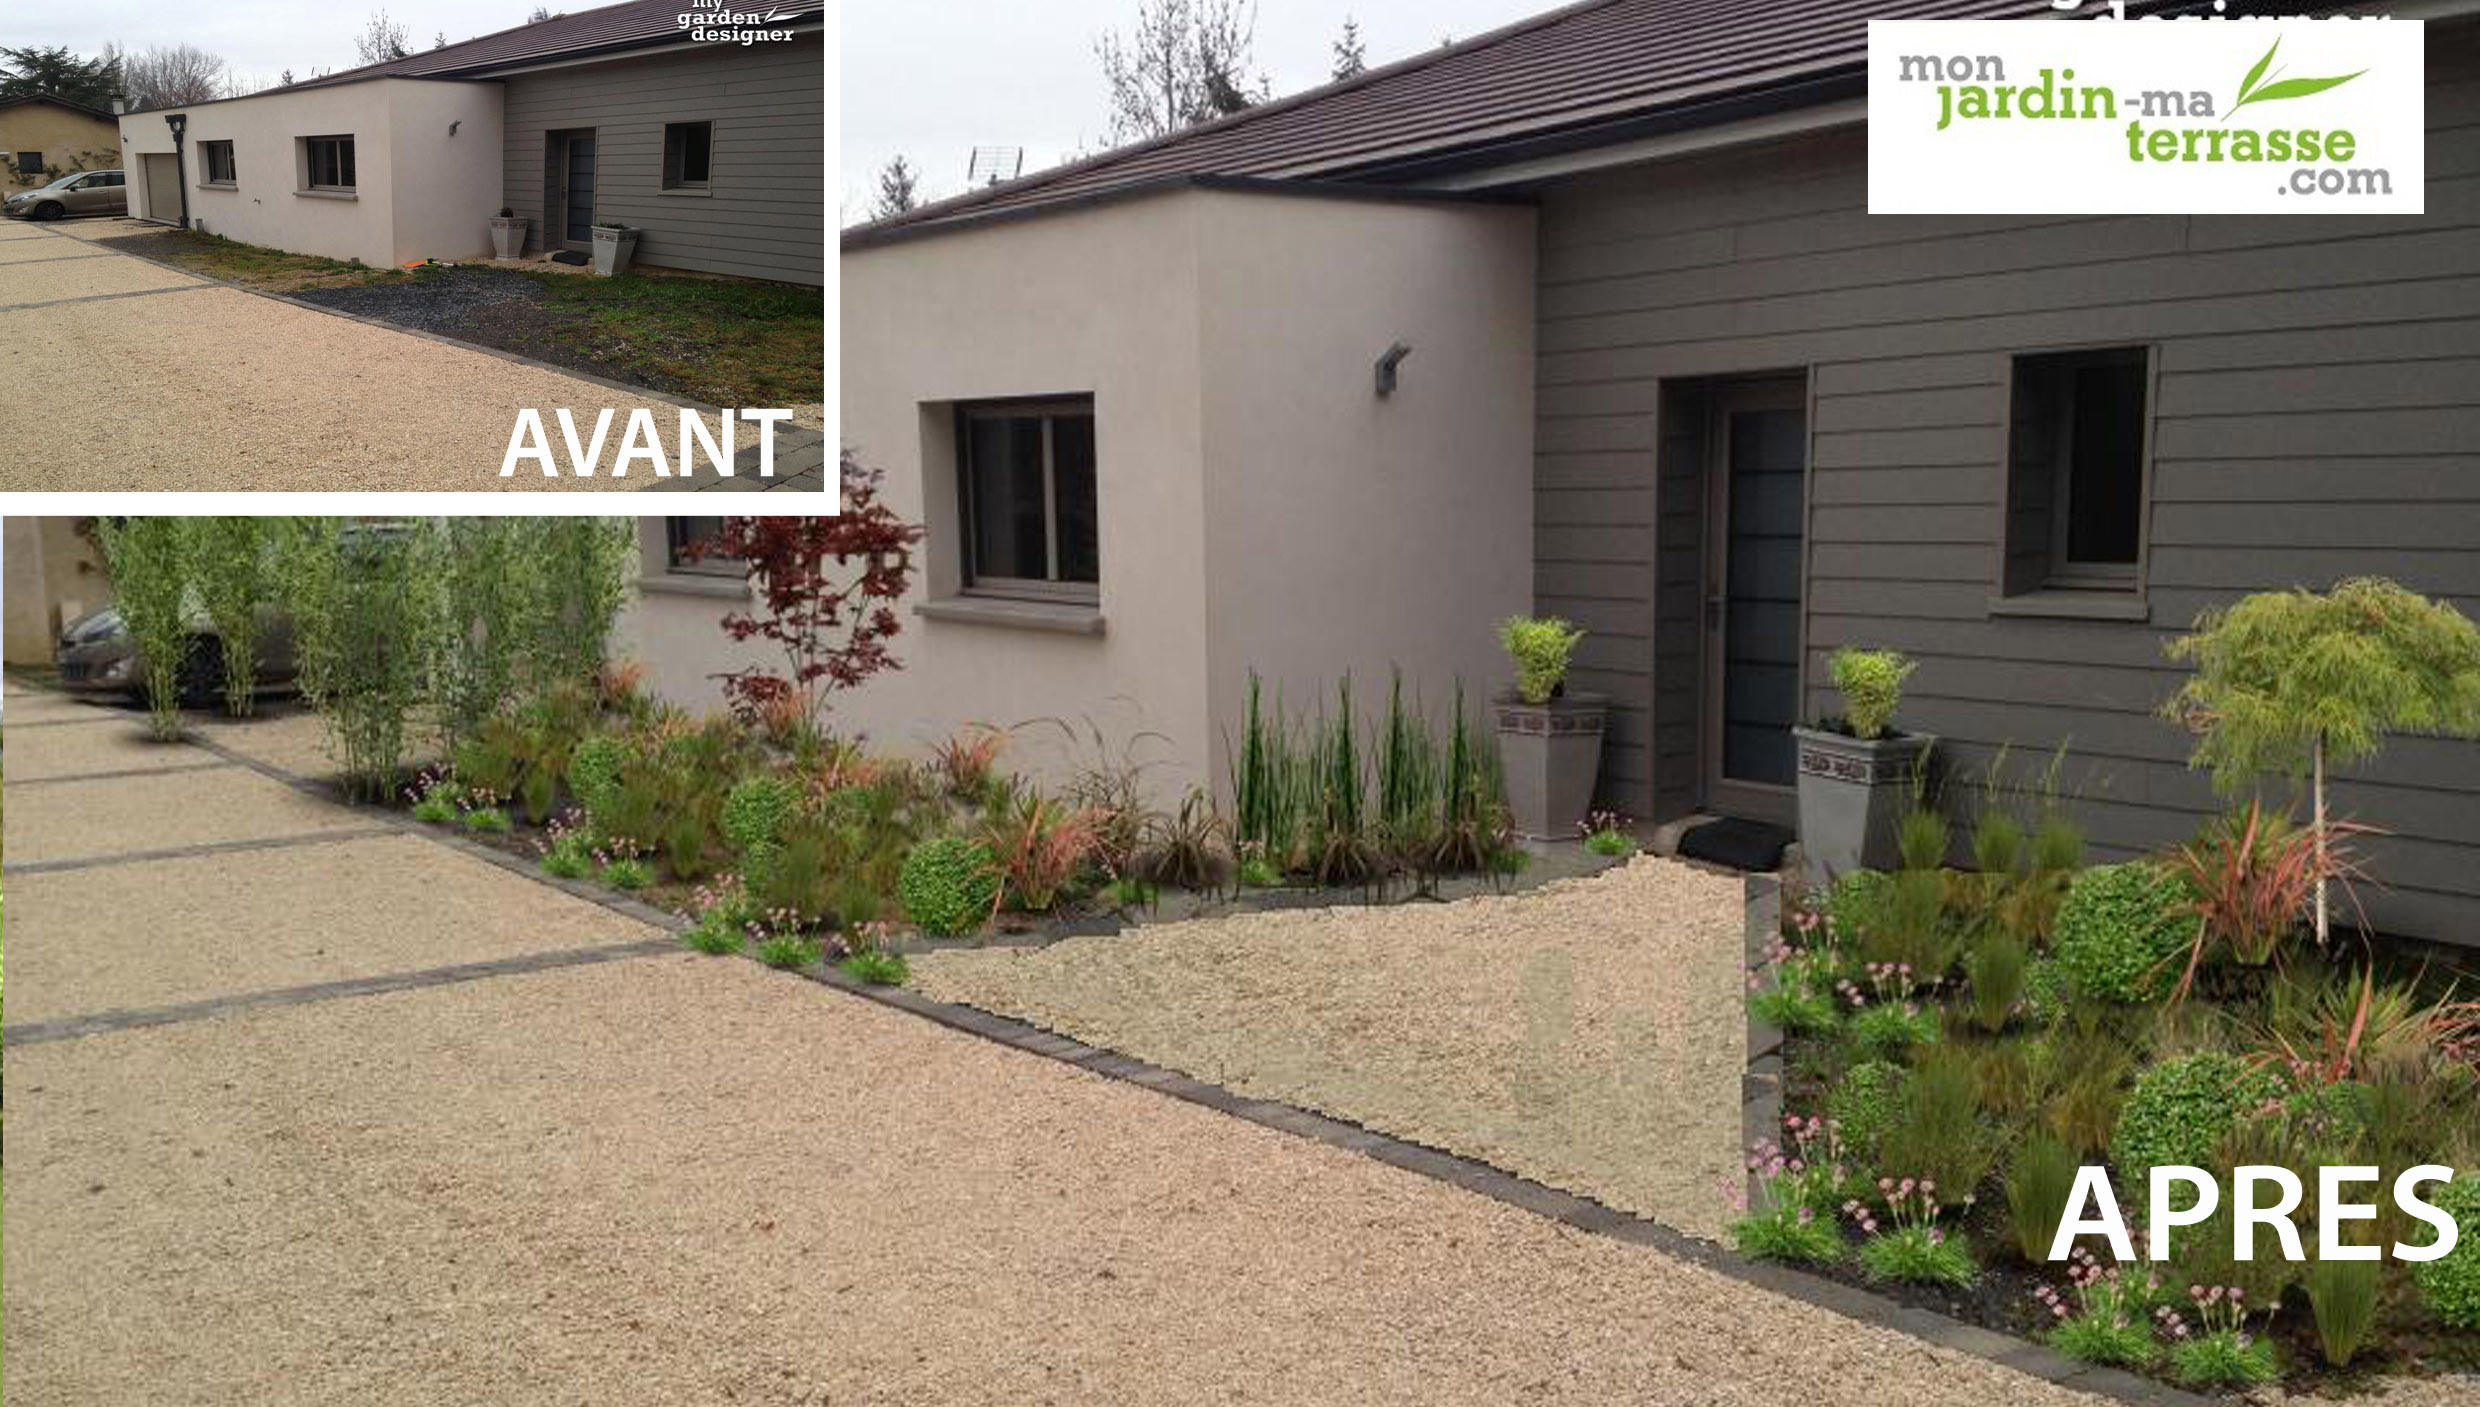 Am nagement du jardin de l entr e d une maison for Amenagement entree jardin